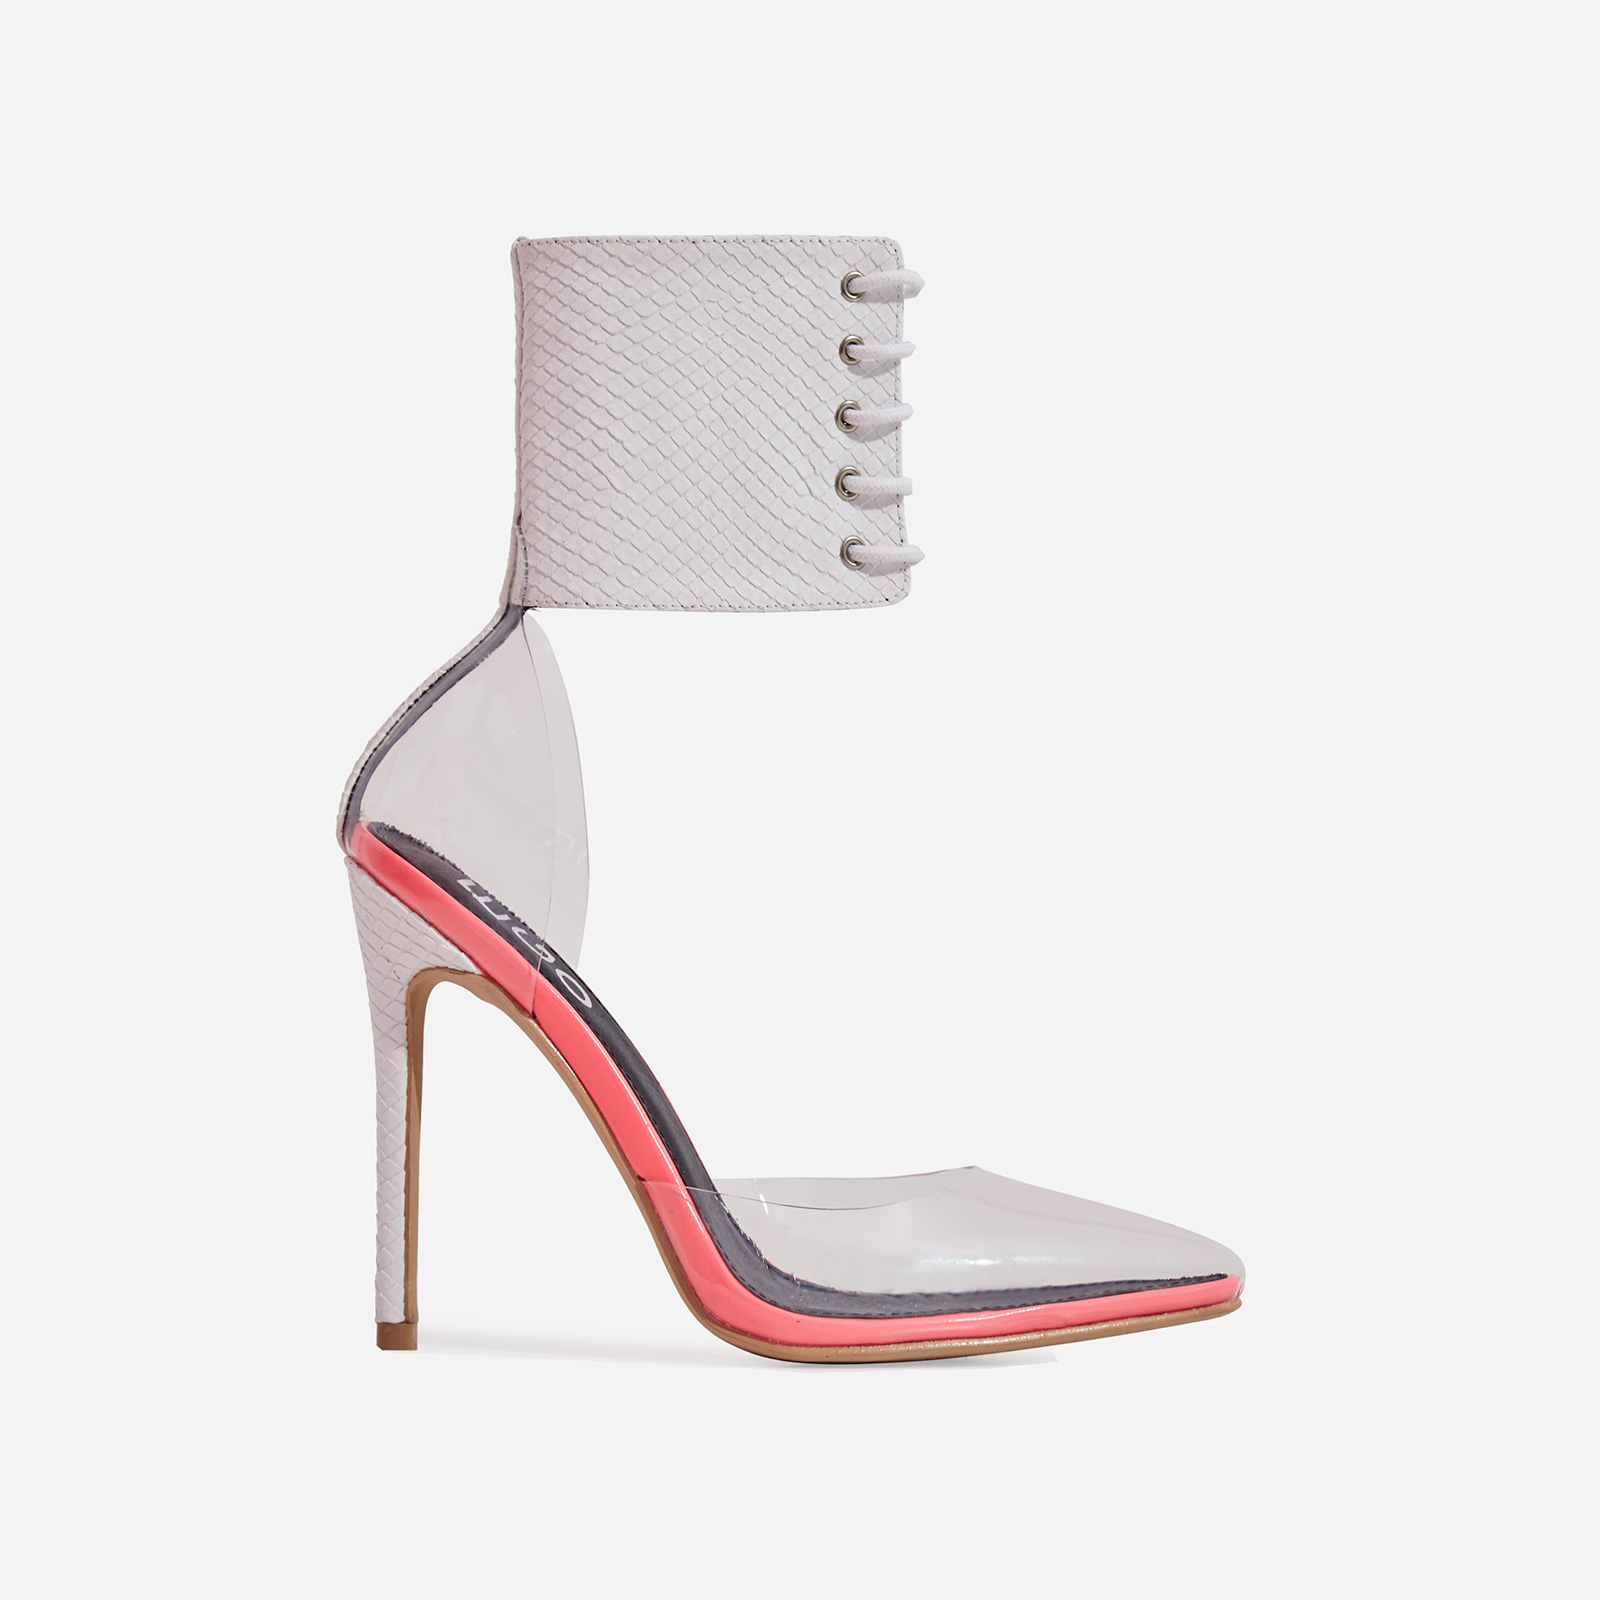 Play Lace Up Perspex Heel In White Snake Print Faux Leather